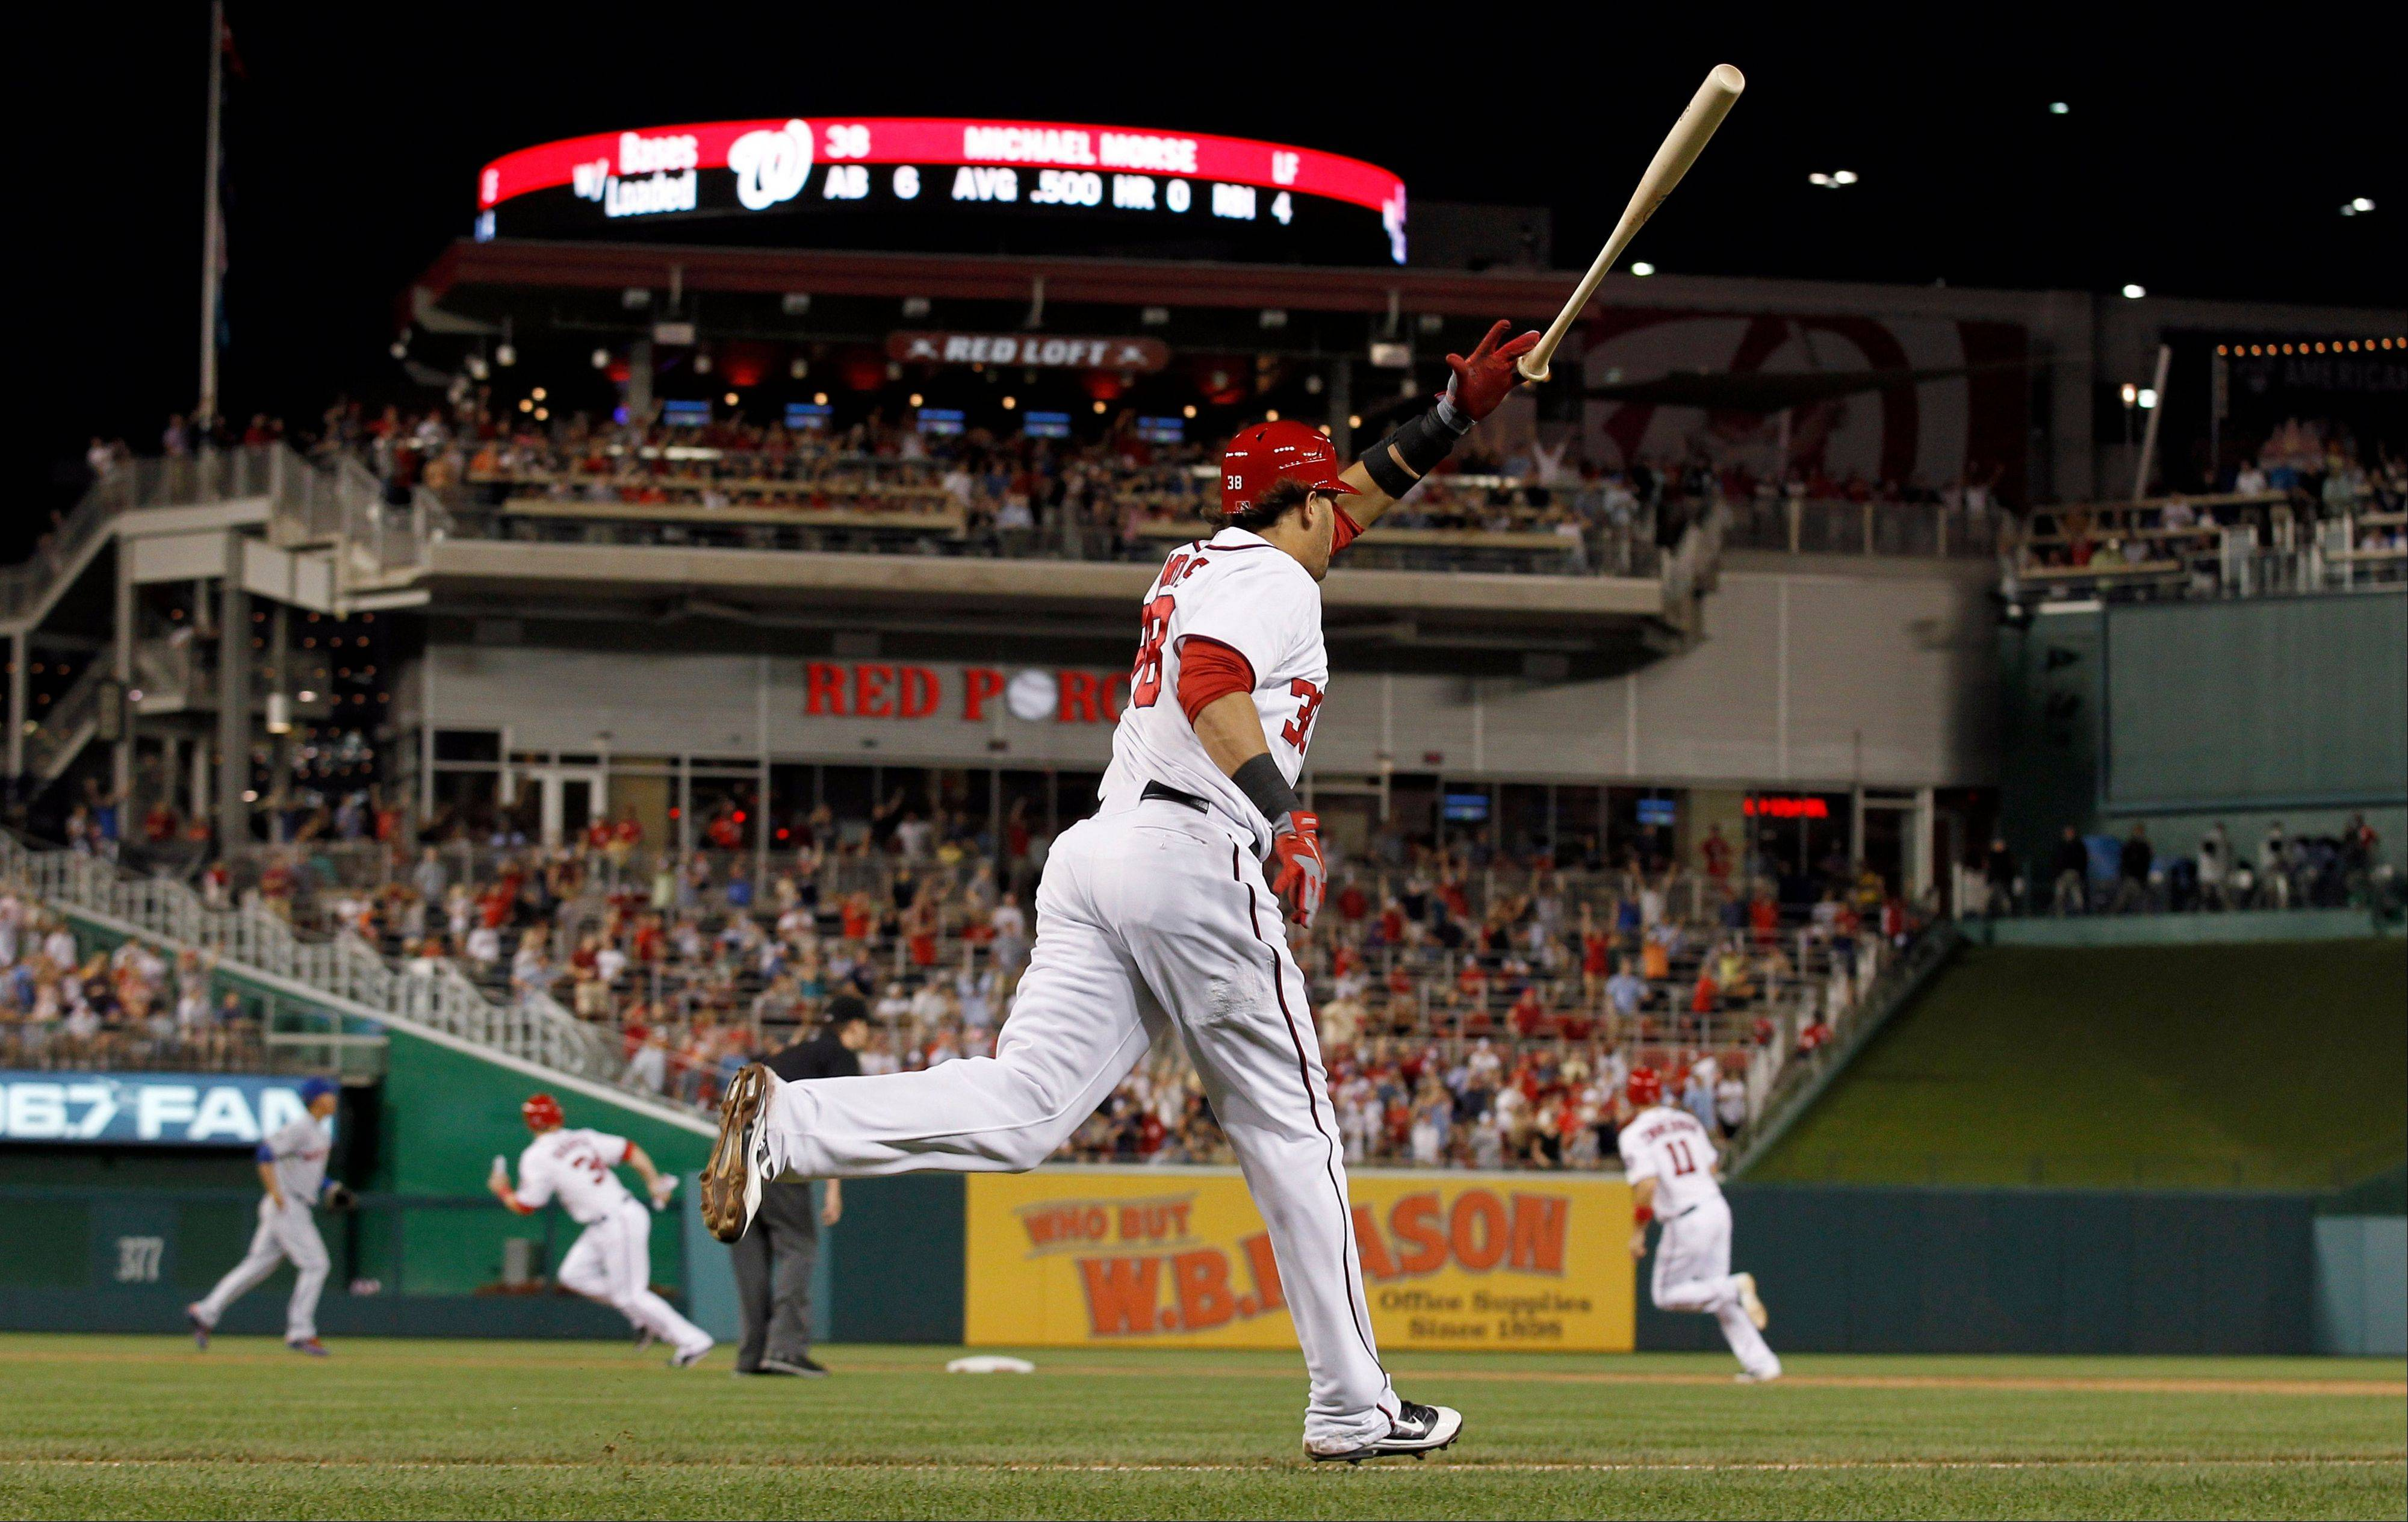 The Nationals' Michael Morse tosses his bat as he runs to first base on a grand slam during the fourth inning Friday at home against the Mets.